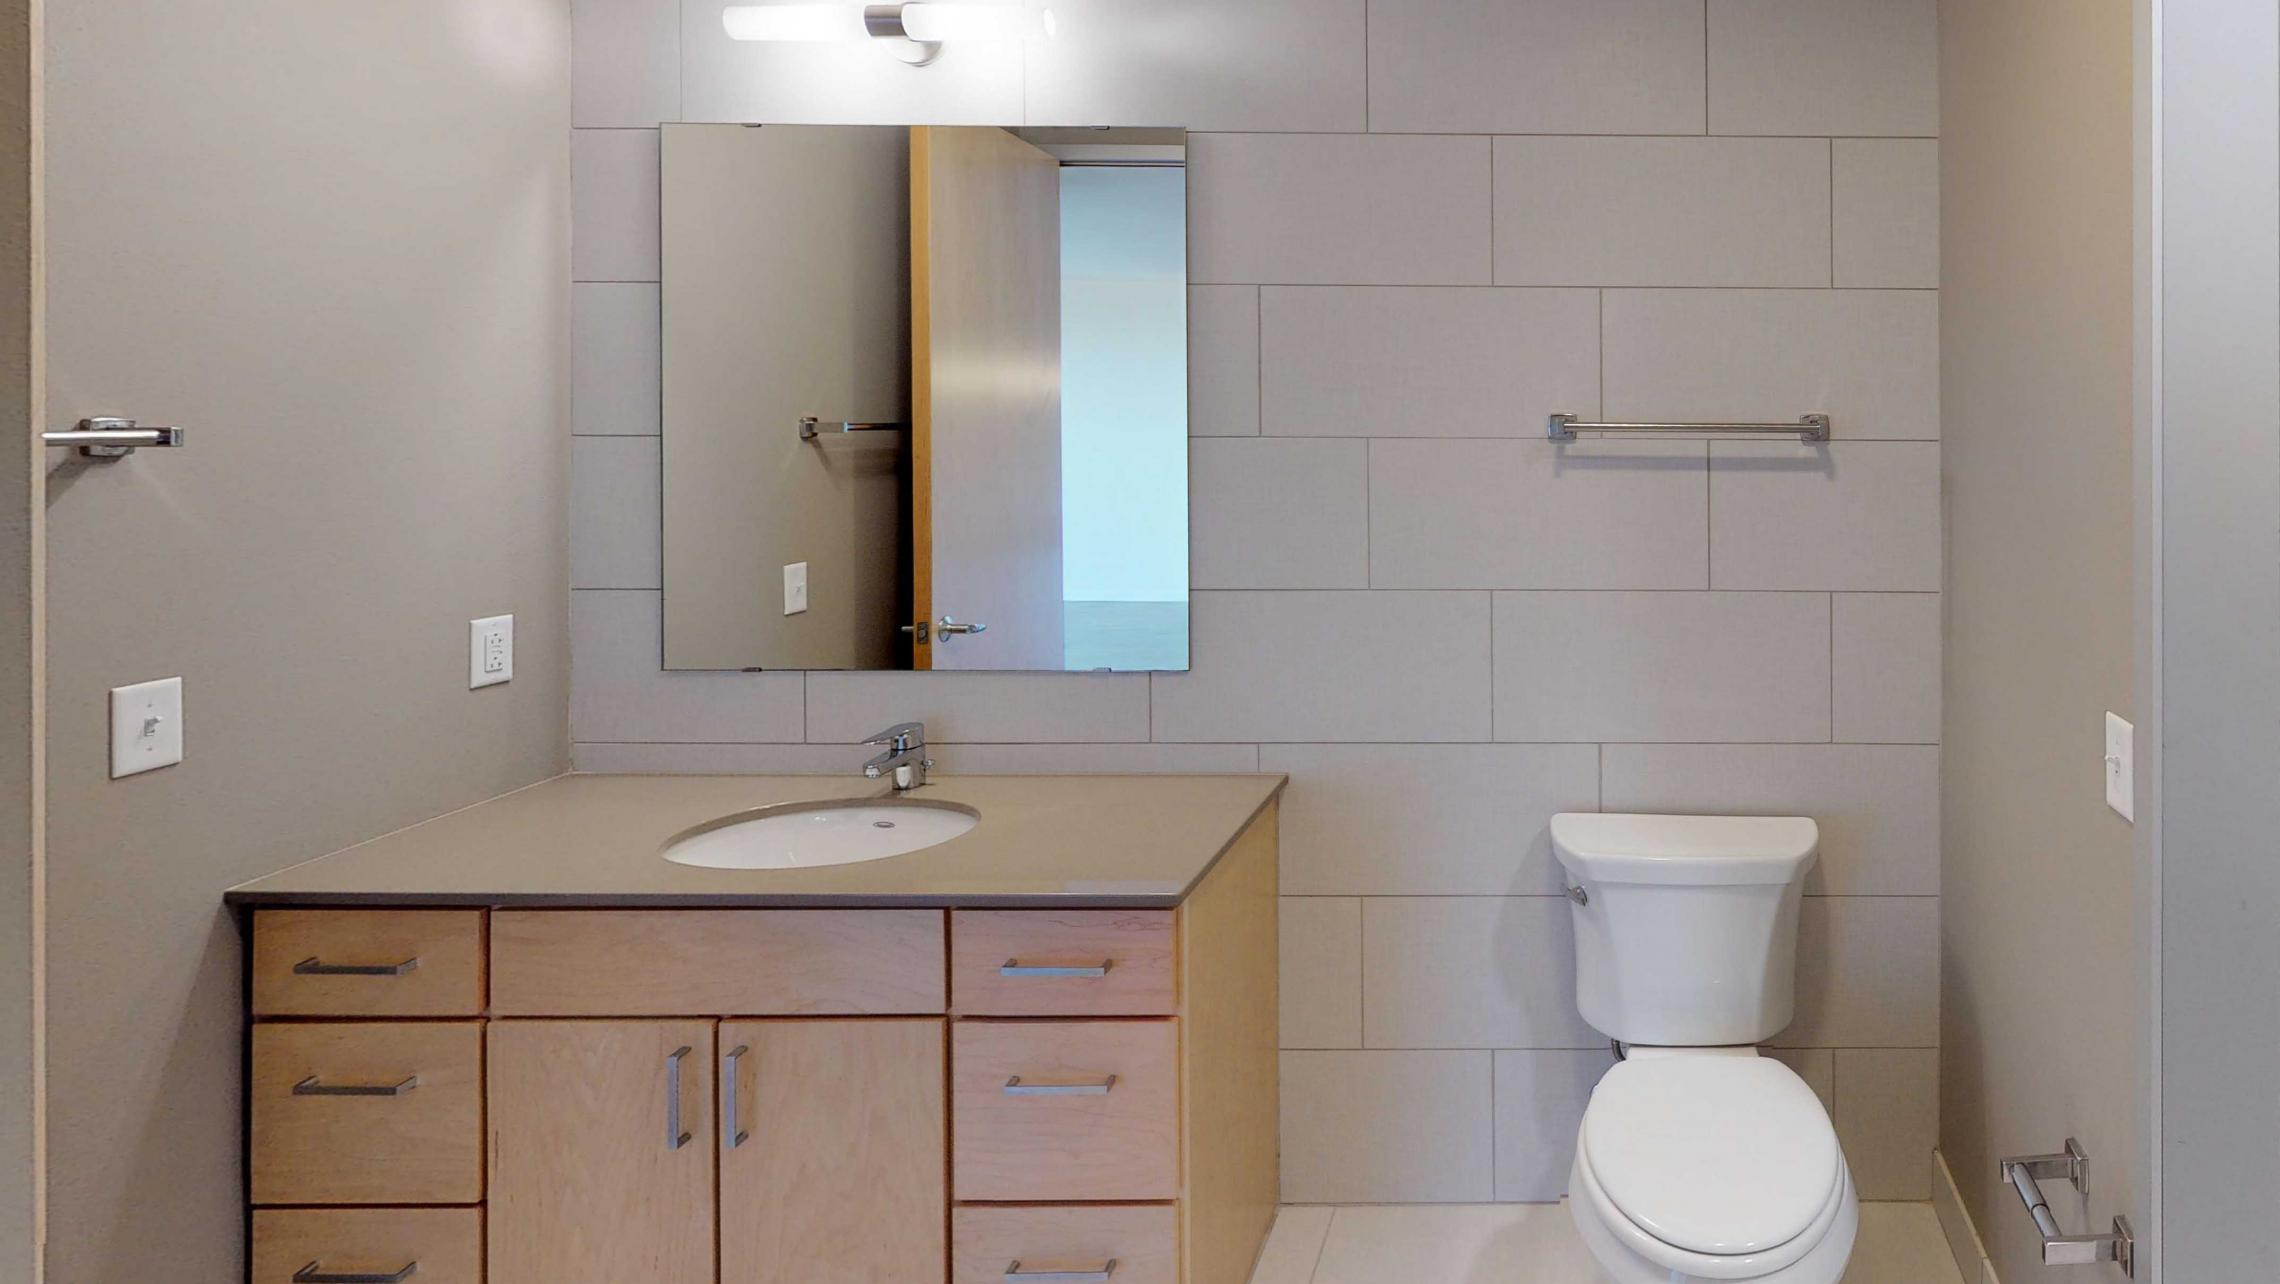 Nine-Line-Apartment-517-Modern-Bathroom-Details-Madison-Upscale-Views-Downtown.jpg